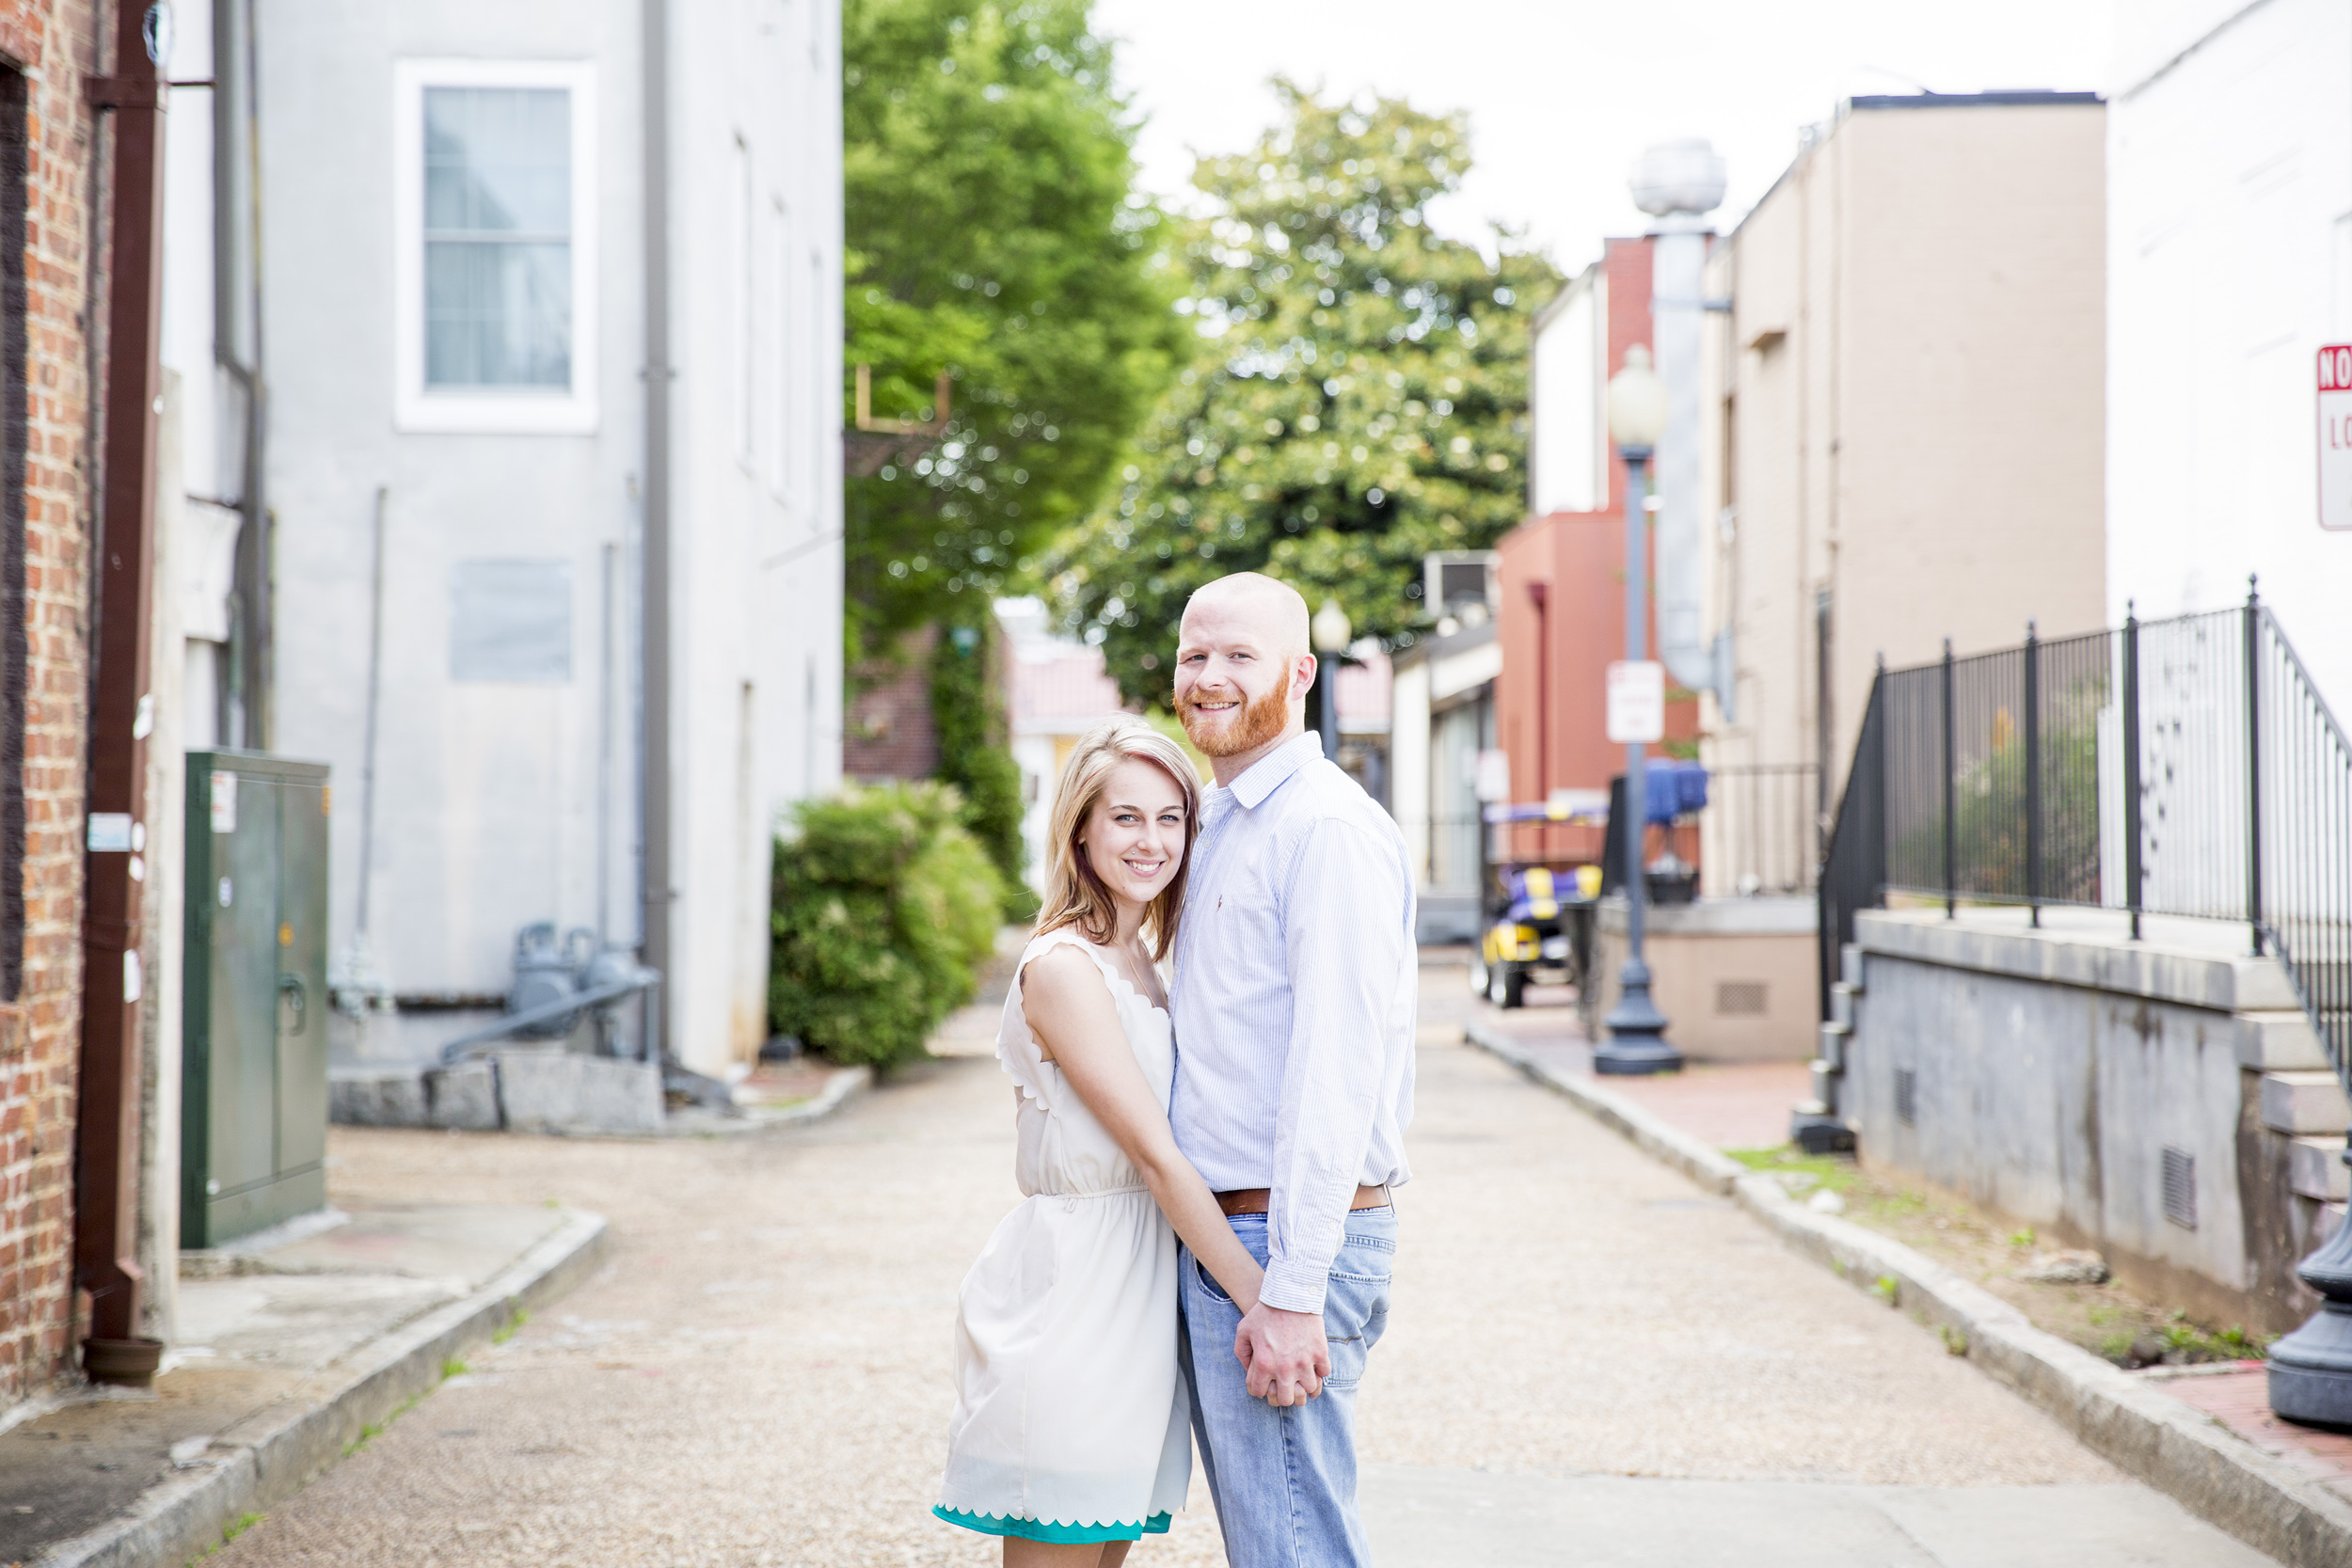 atlanta wedding photography - allison and griffin engagement - marietta square - between the blinks 1001.jpg